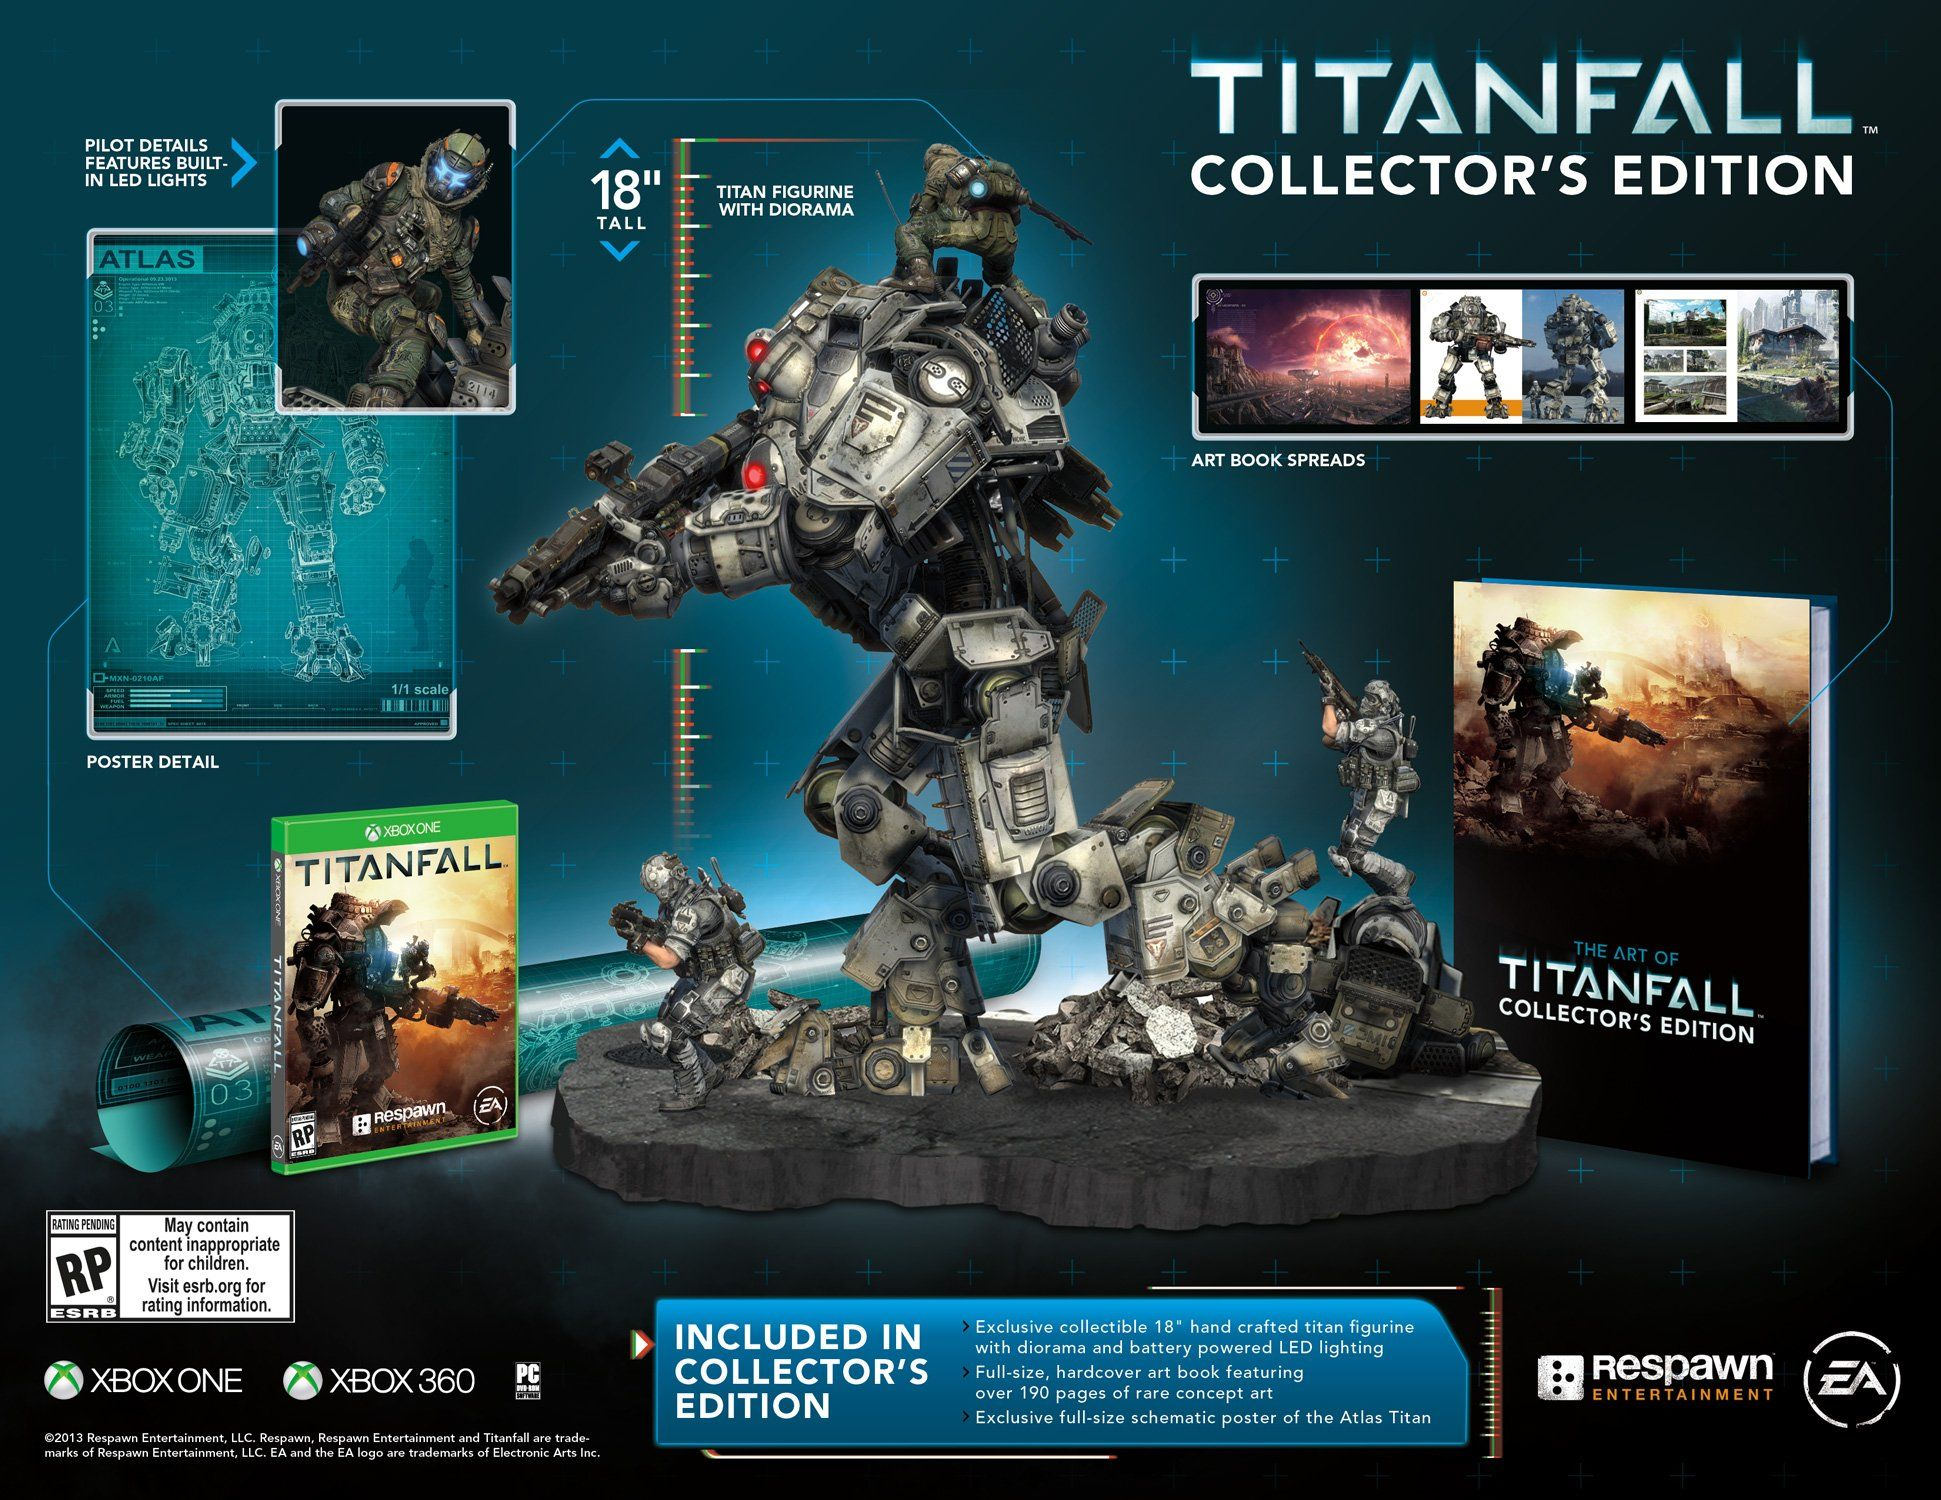 Pin By Jamie Hinkle On Christmas Present Ideas Titanfall The